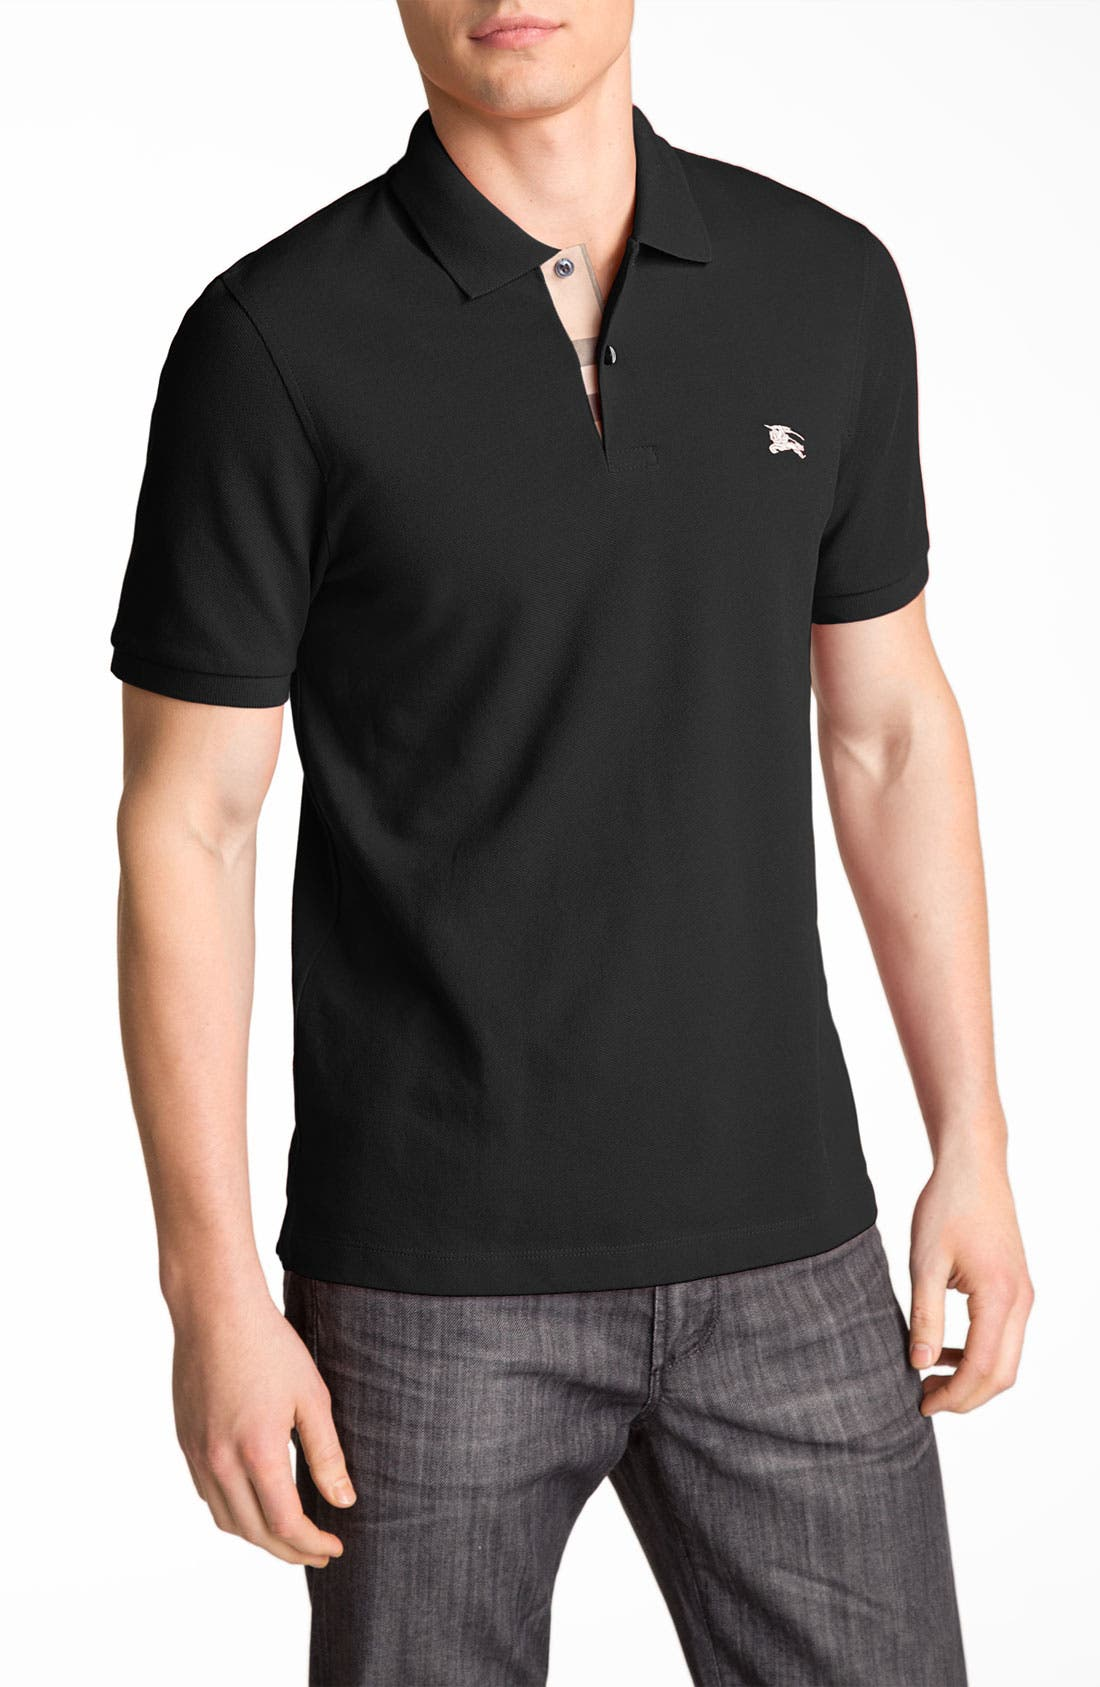 BURBERRY,                             Brit Modern Fit Piqué Polo,                             Main thumbnail 1, color,                             001